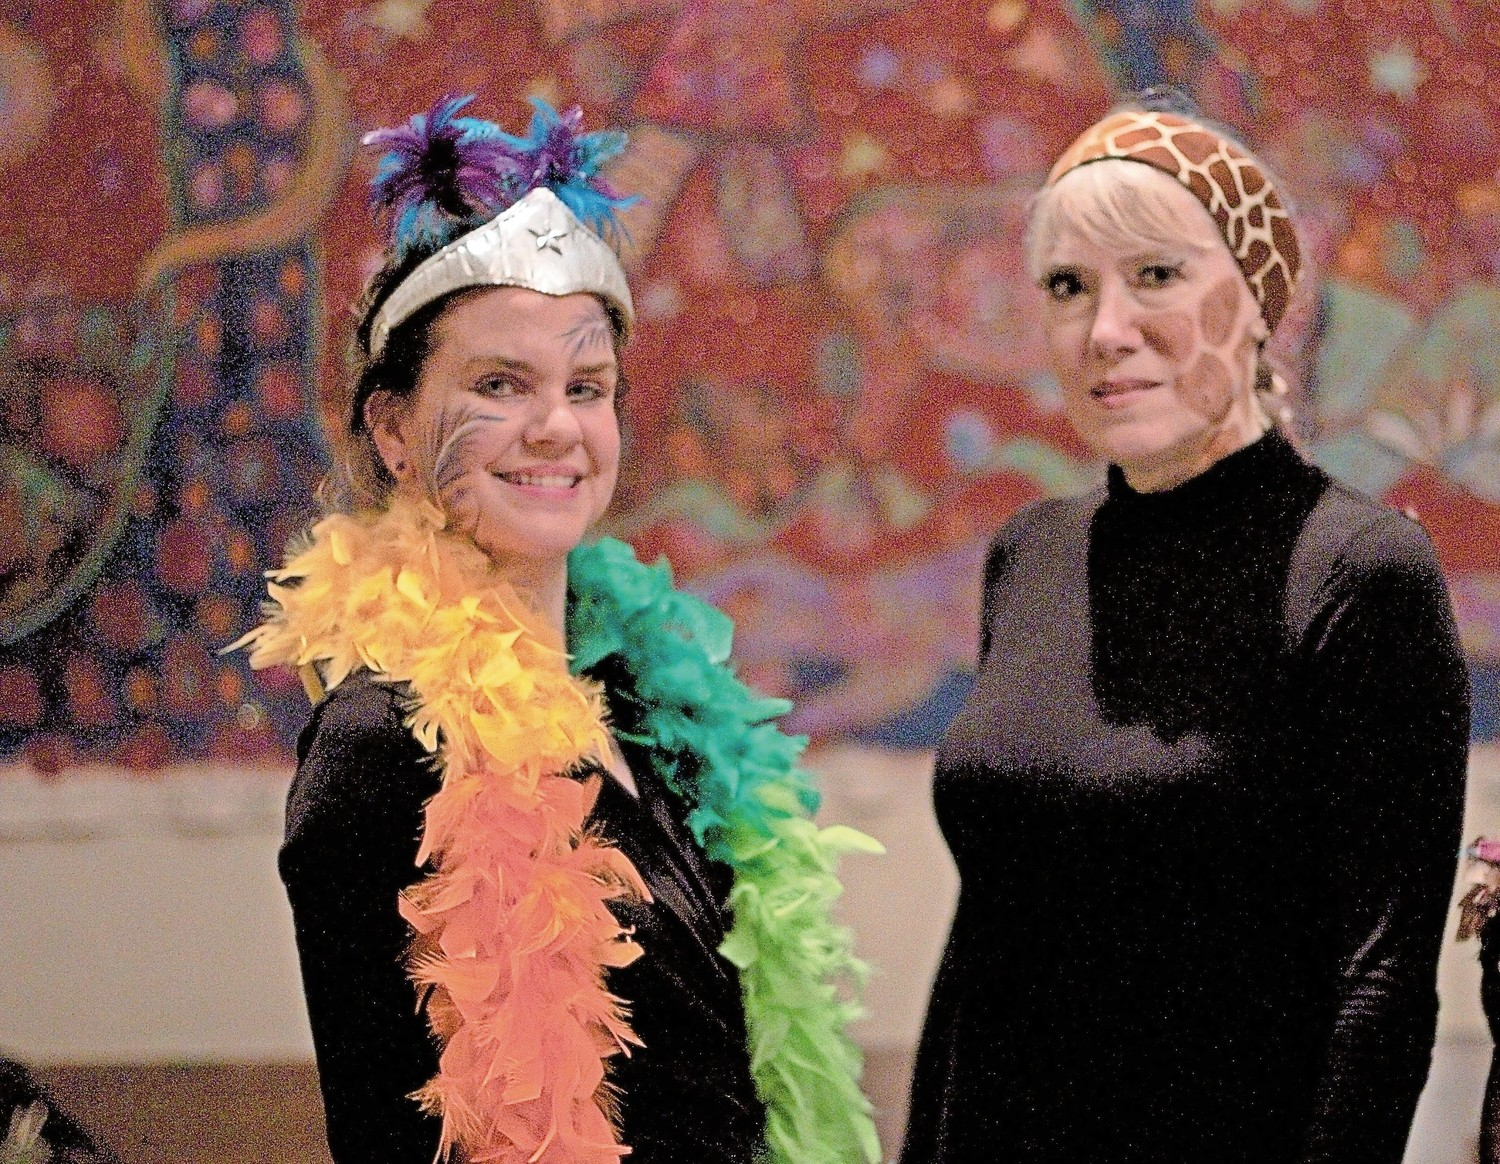 The characters of Plume Bird and Giraffe are portrayed by Livia Hill, left, and Karin Weibert.